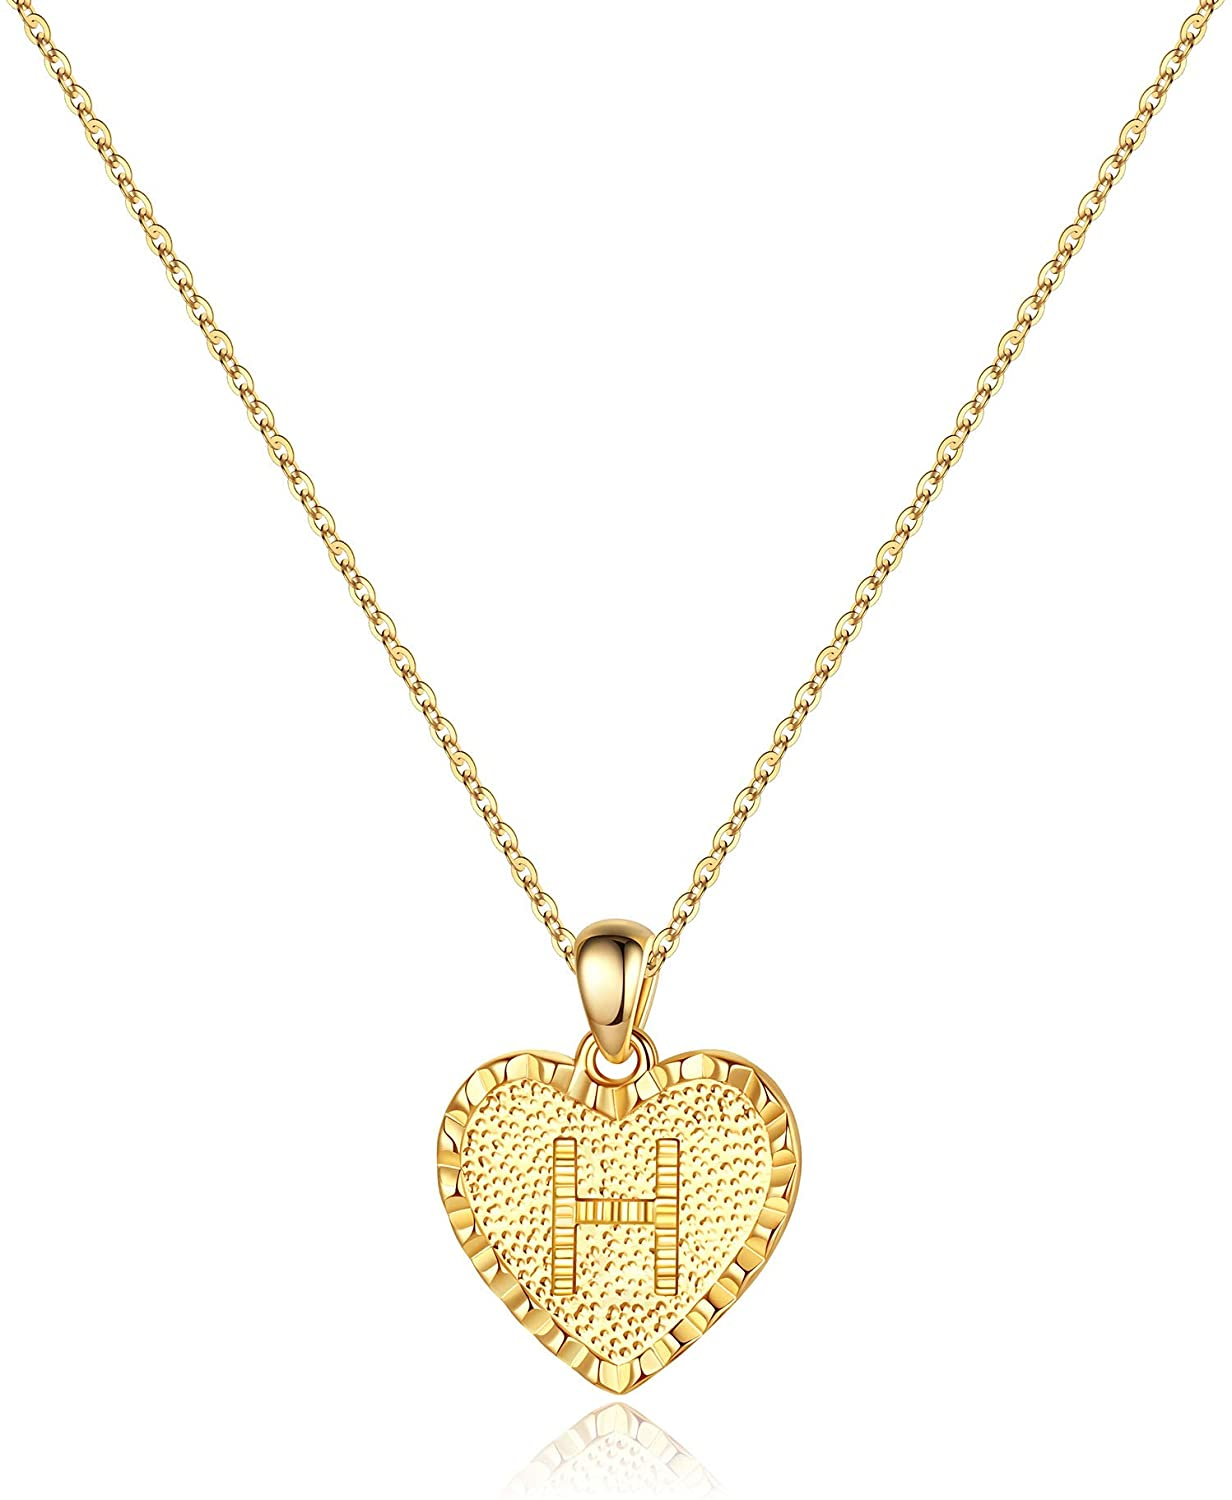 WEEKLY FINDS - Including this Heart Initial Necklace for Women - 14K Gold Filled Dainty Heart Pendant Initial Letter Necklaces, Handmade Engraved Alphabet Monogram Necklaces Jewelry Gift Idea for Women Teen Girls